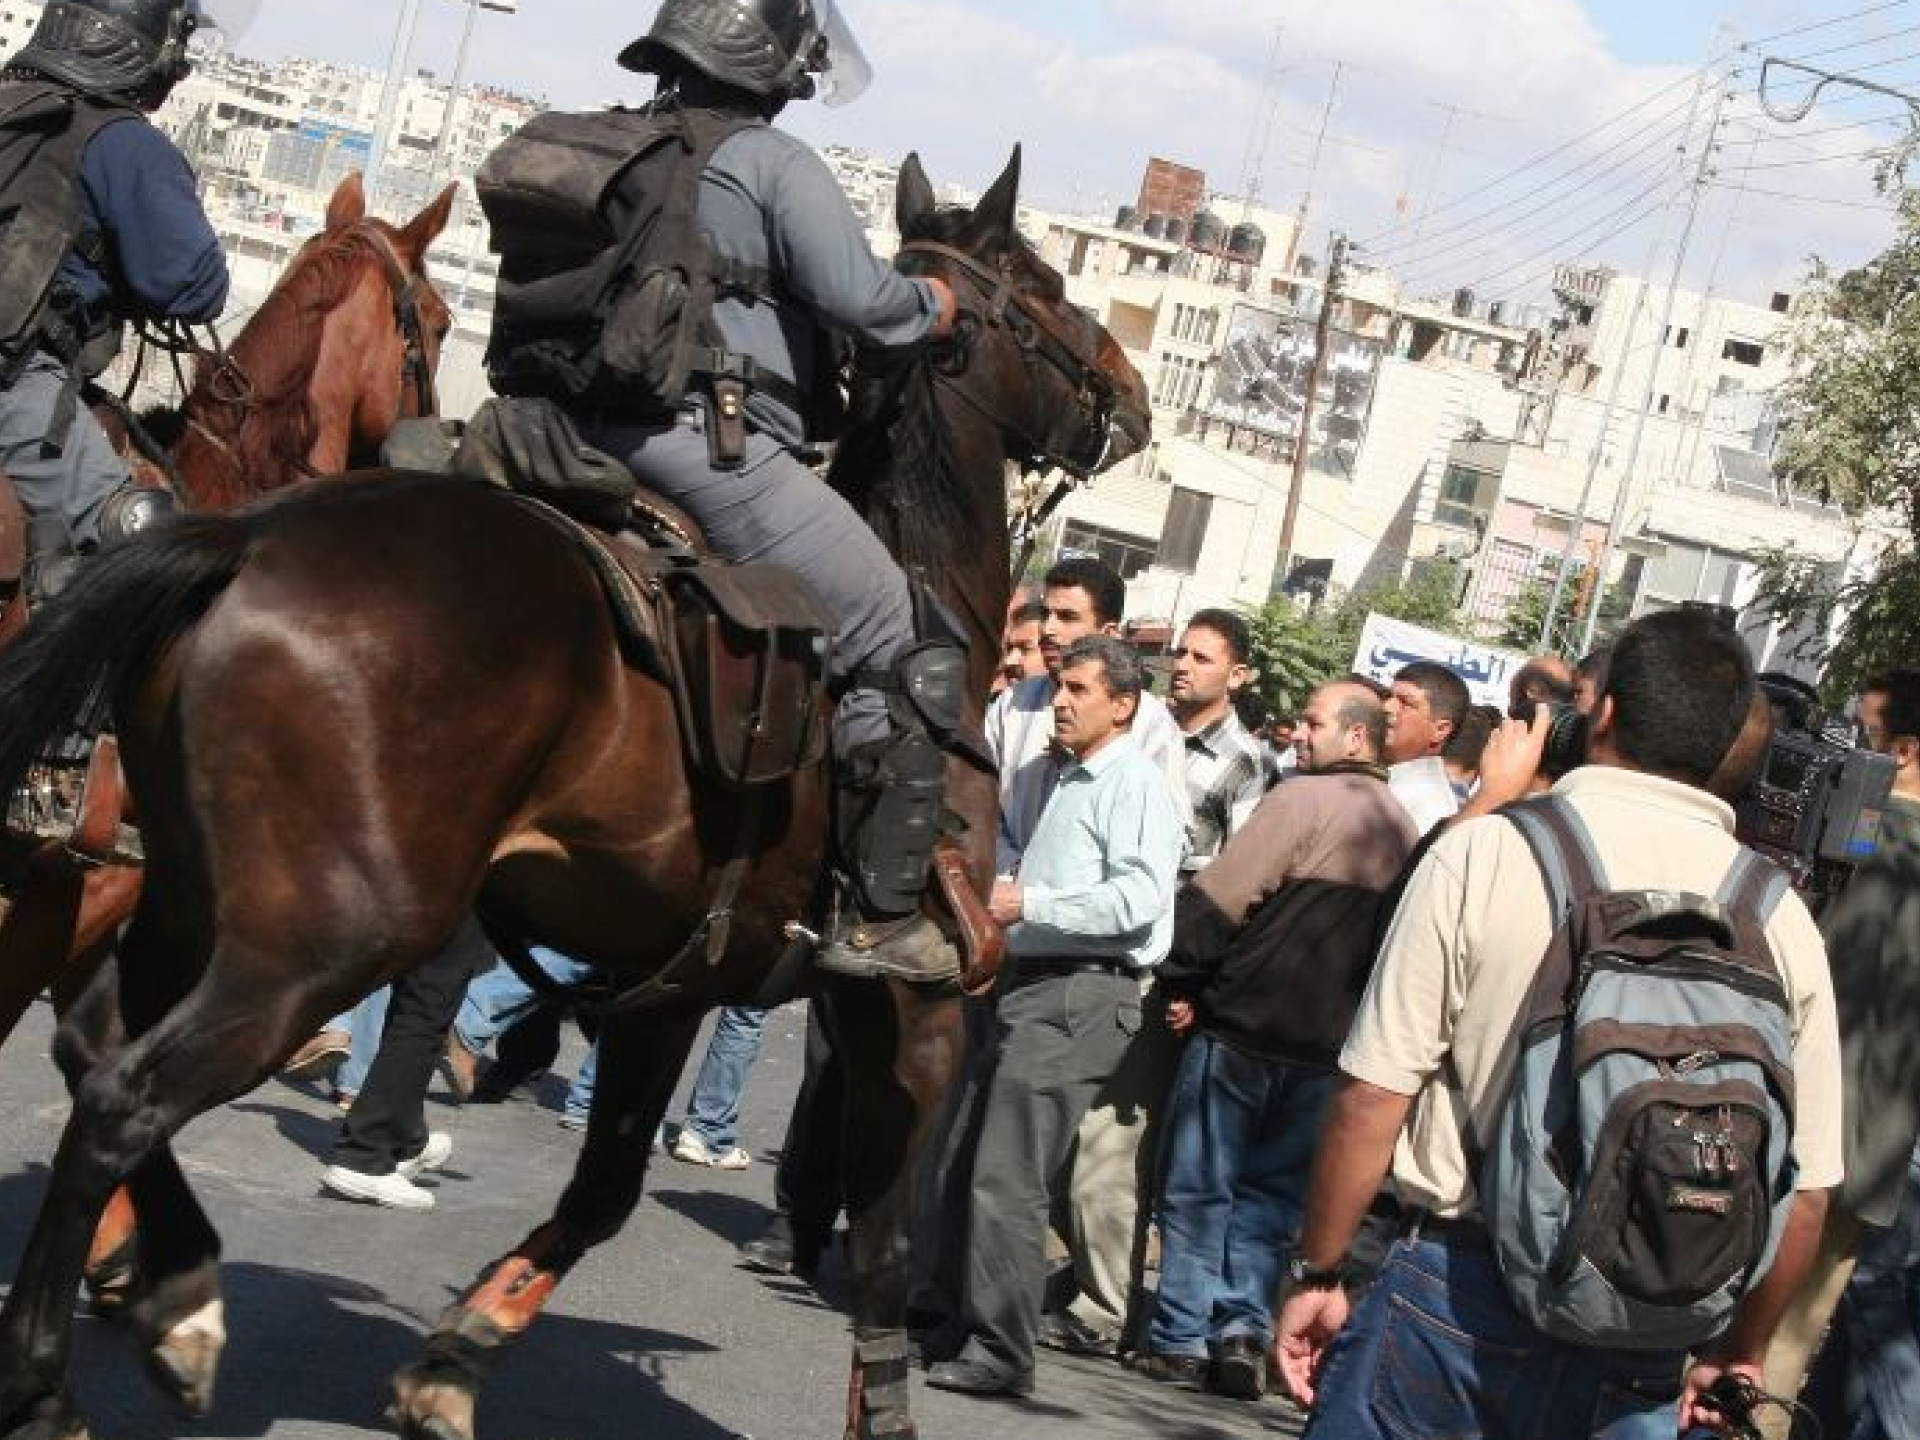 Mounted Policemen Controlling the Passage of Civilians